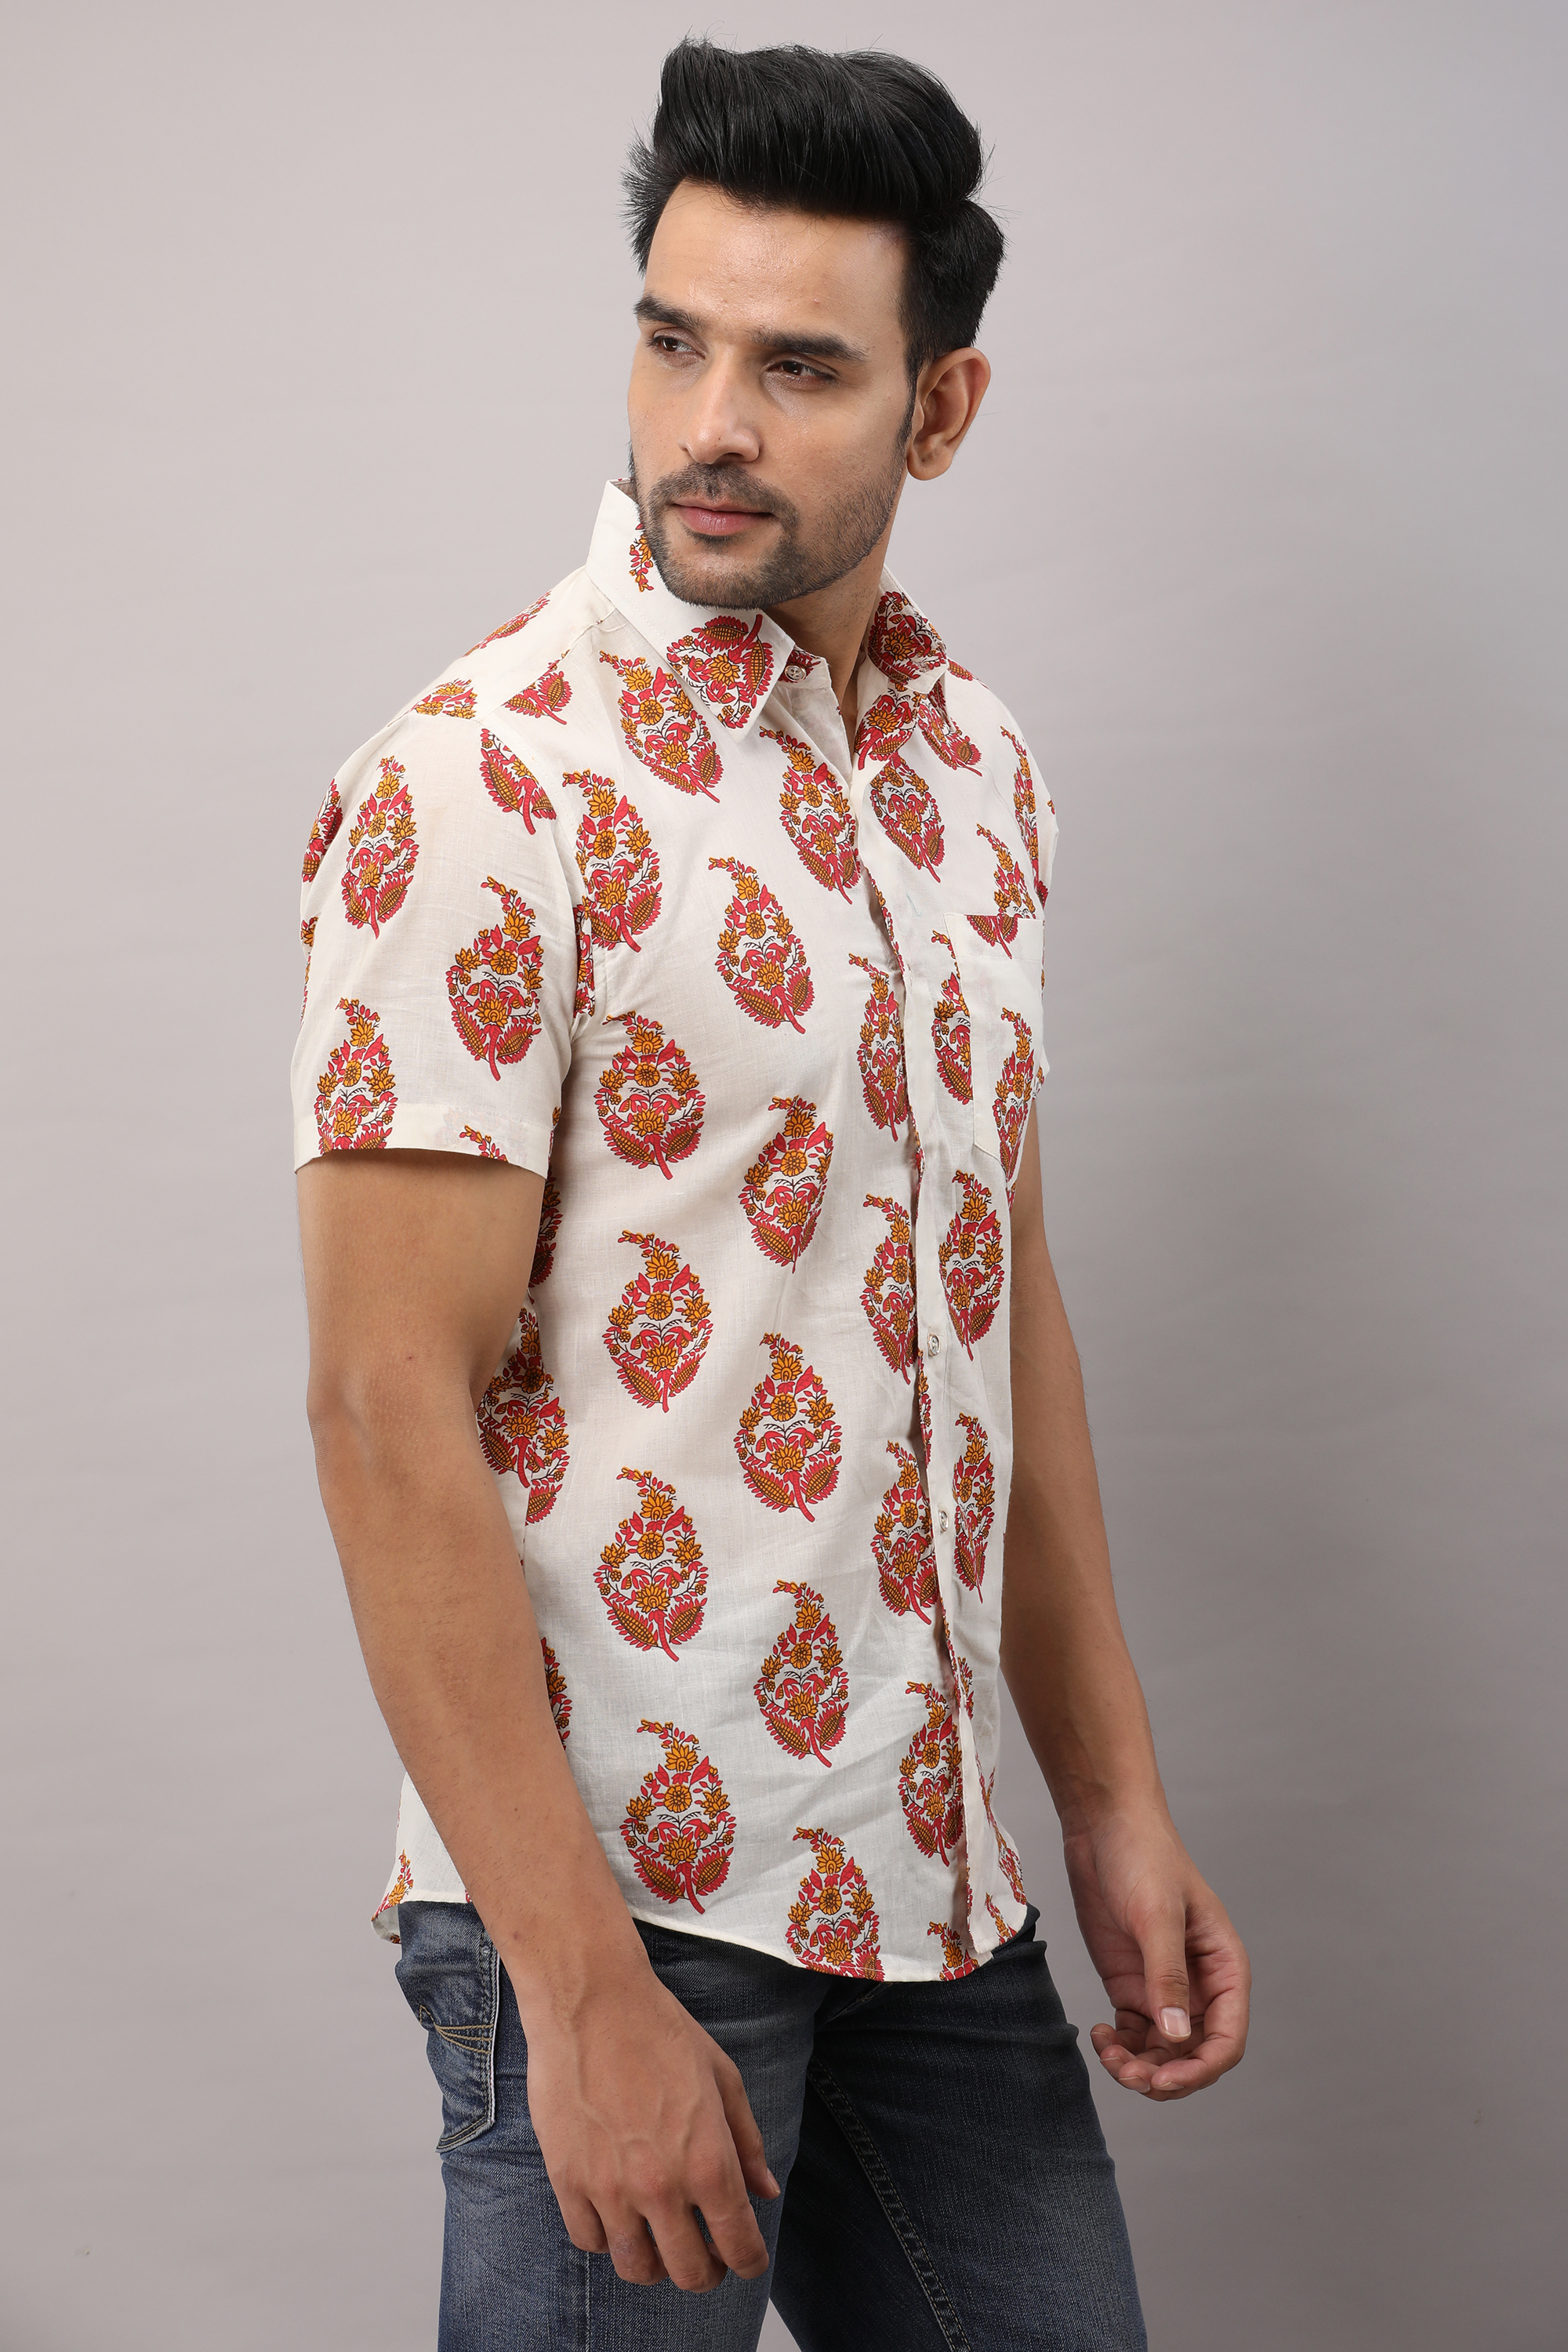 FrionKandy Cotton Ethnic motifs Casual White Regular Shirt For Men - L